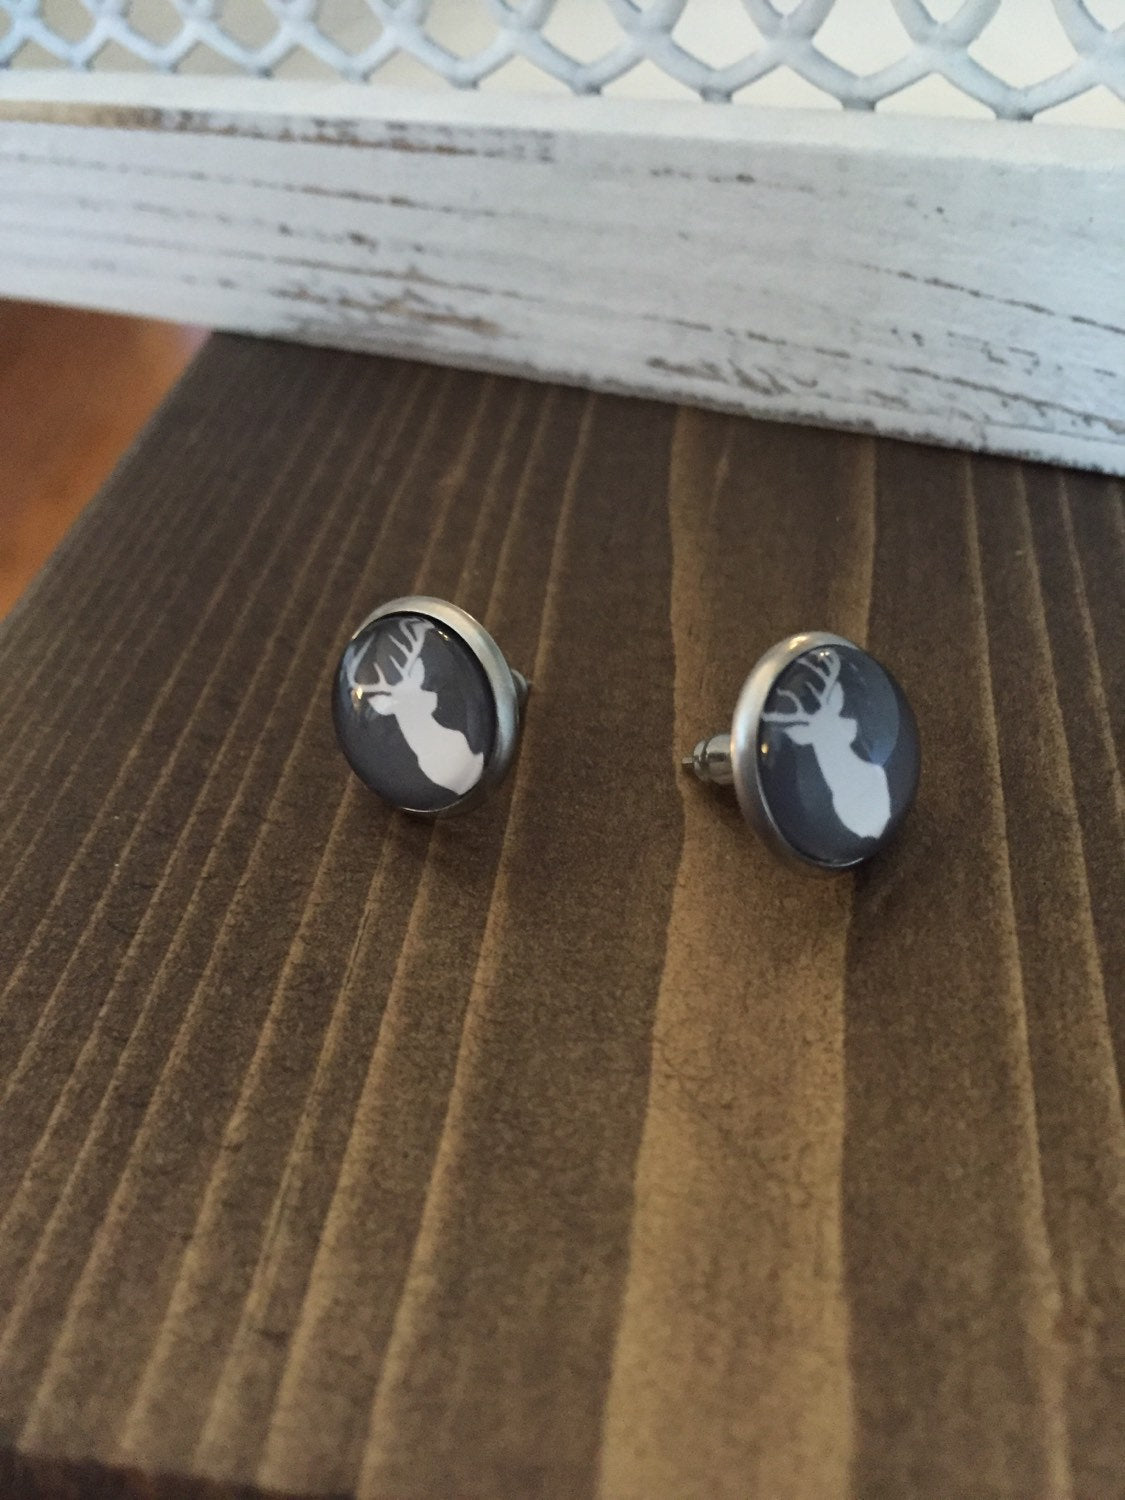 Grey White Deer Earrings Stainless Steel Studs